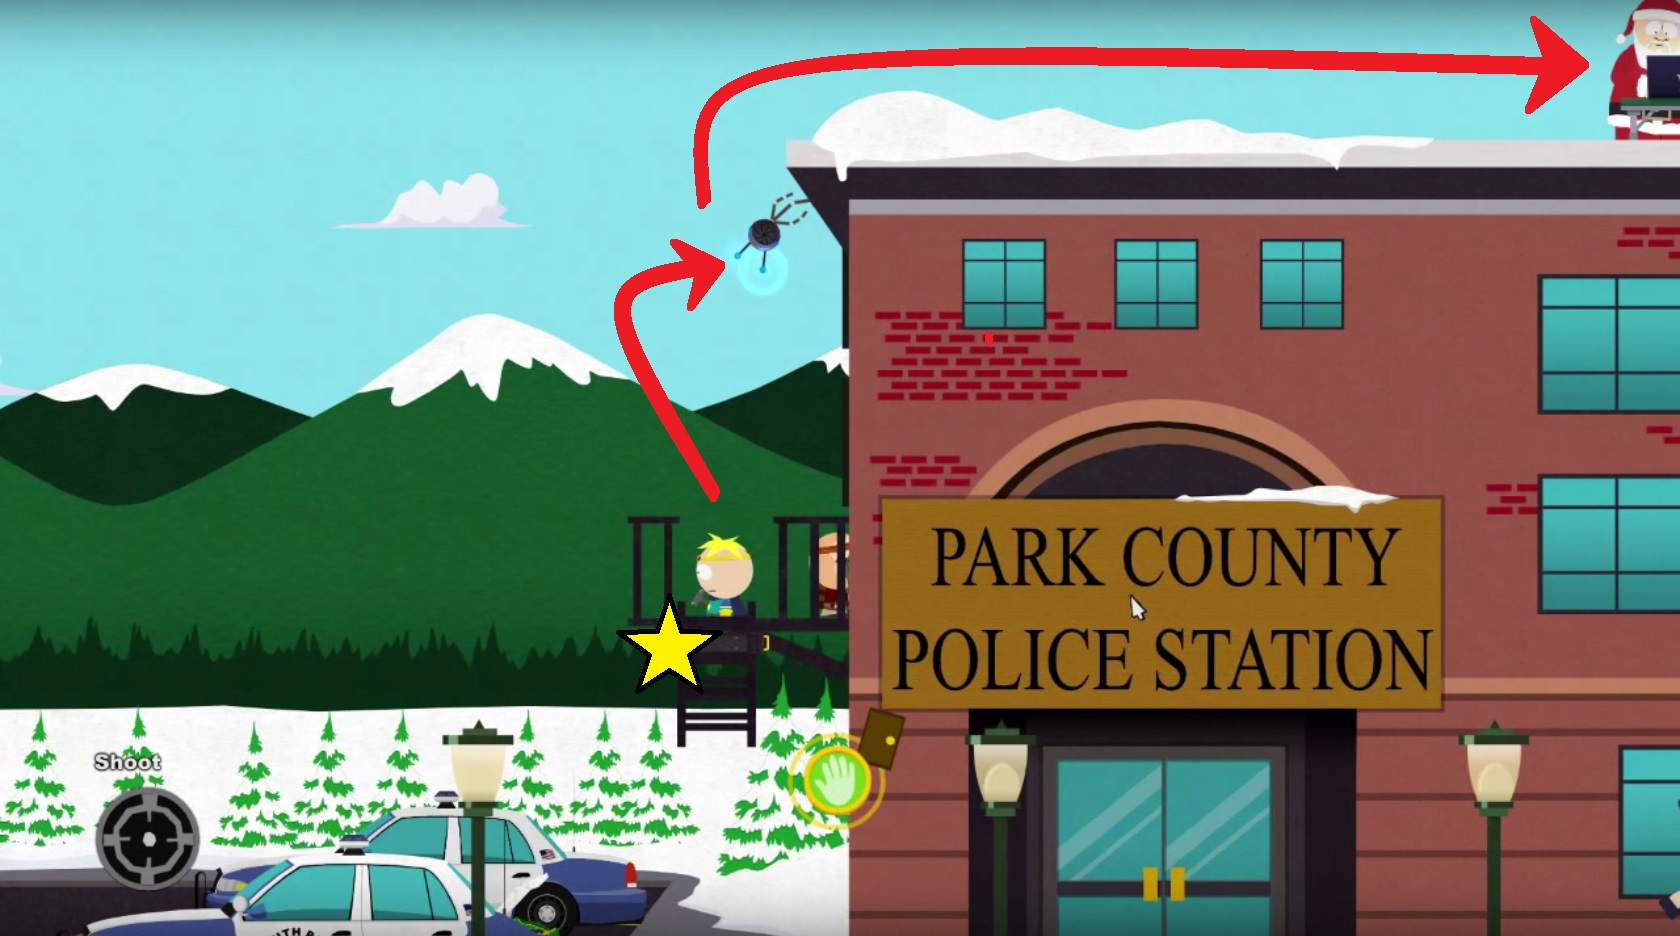 Find Santa Claus on the South Park police roof